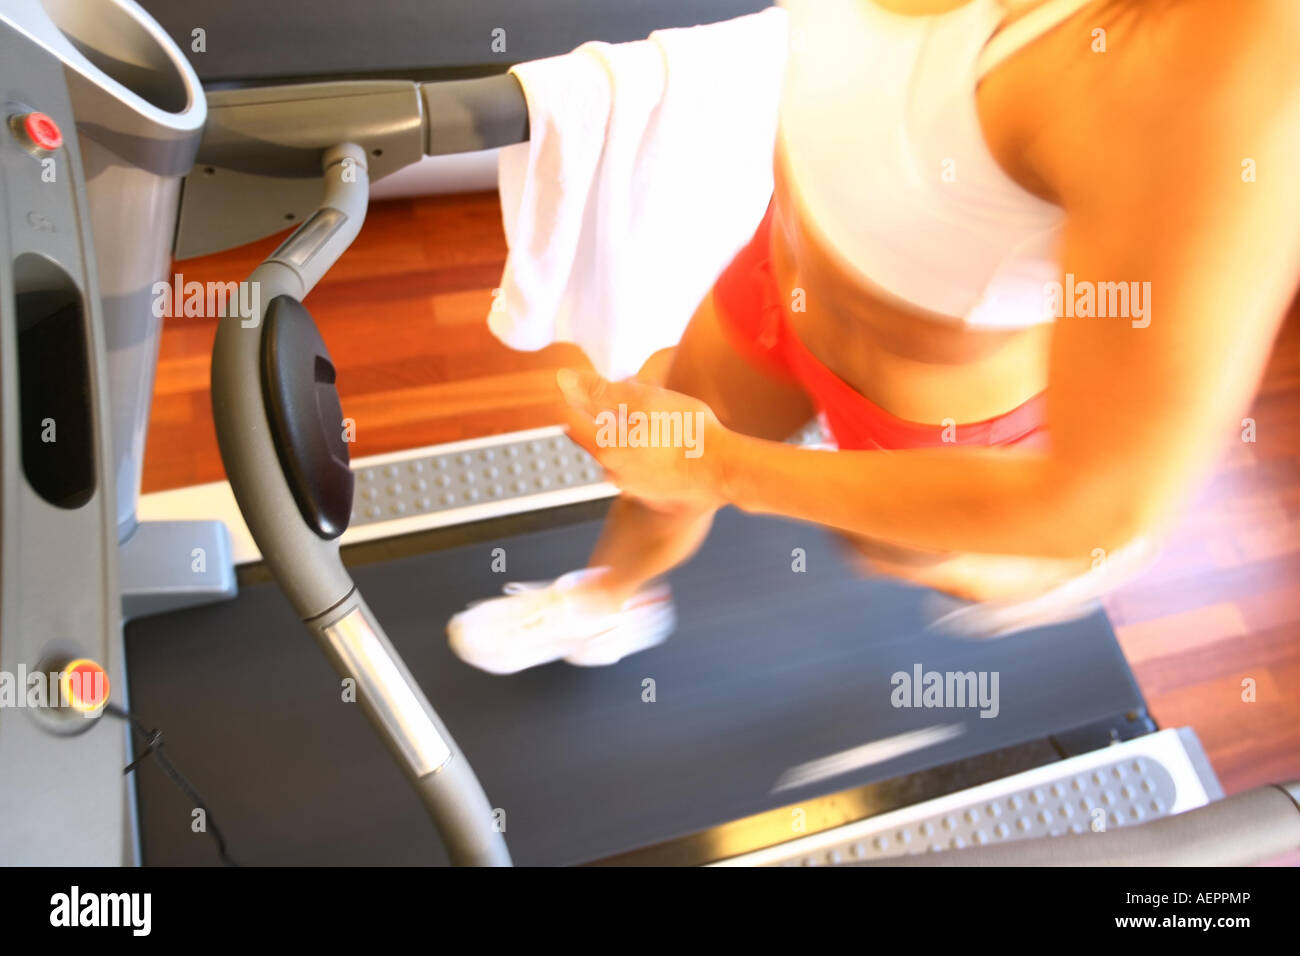 Young woman is training with a treadmill ,Junge Frau laeuft auf einem Laufband in einem Fitnessstudio - Stock Image